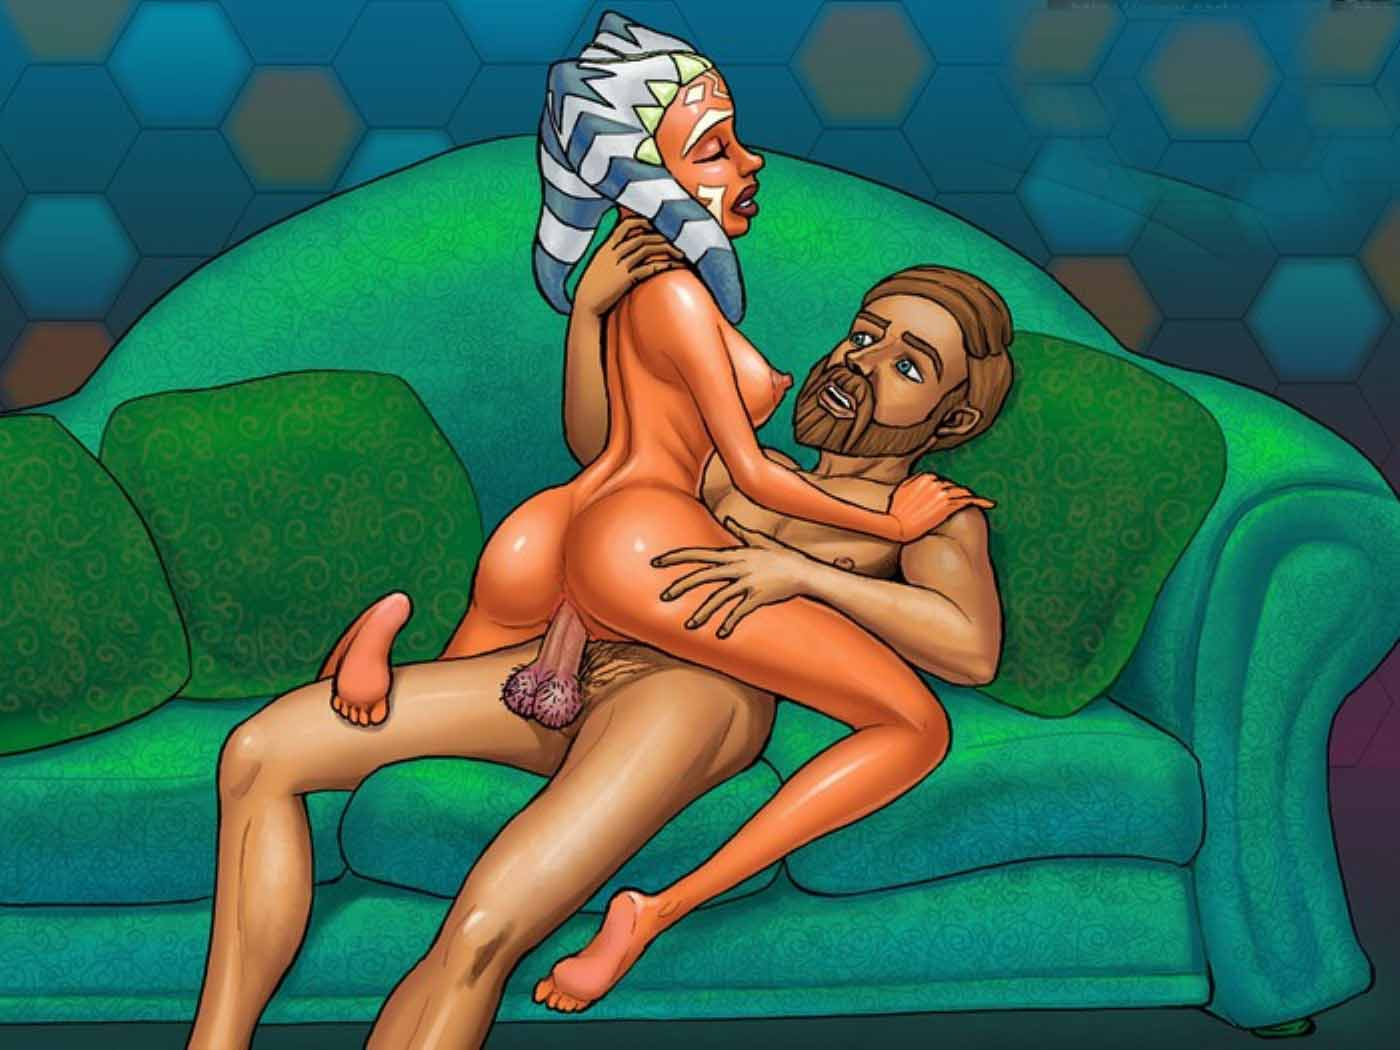 Star wars cartoon sex porn hentay scenes